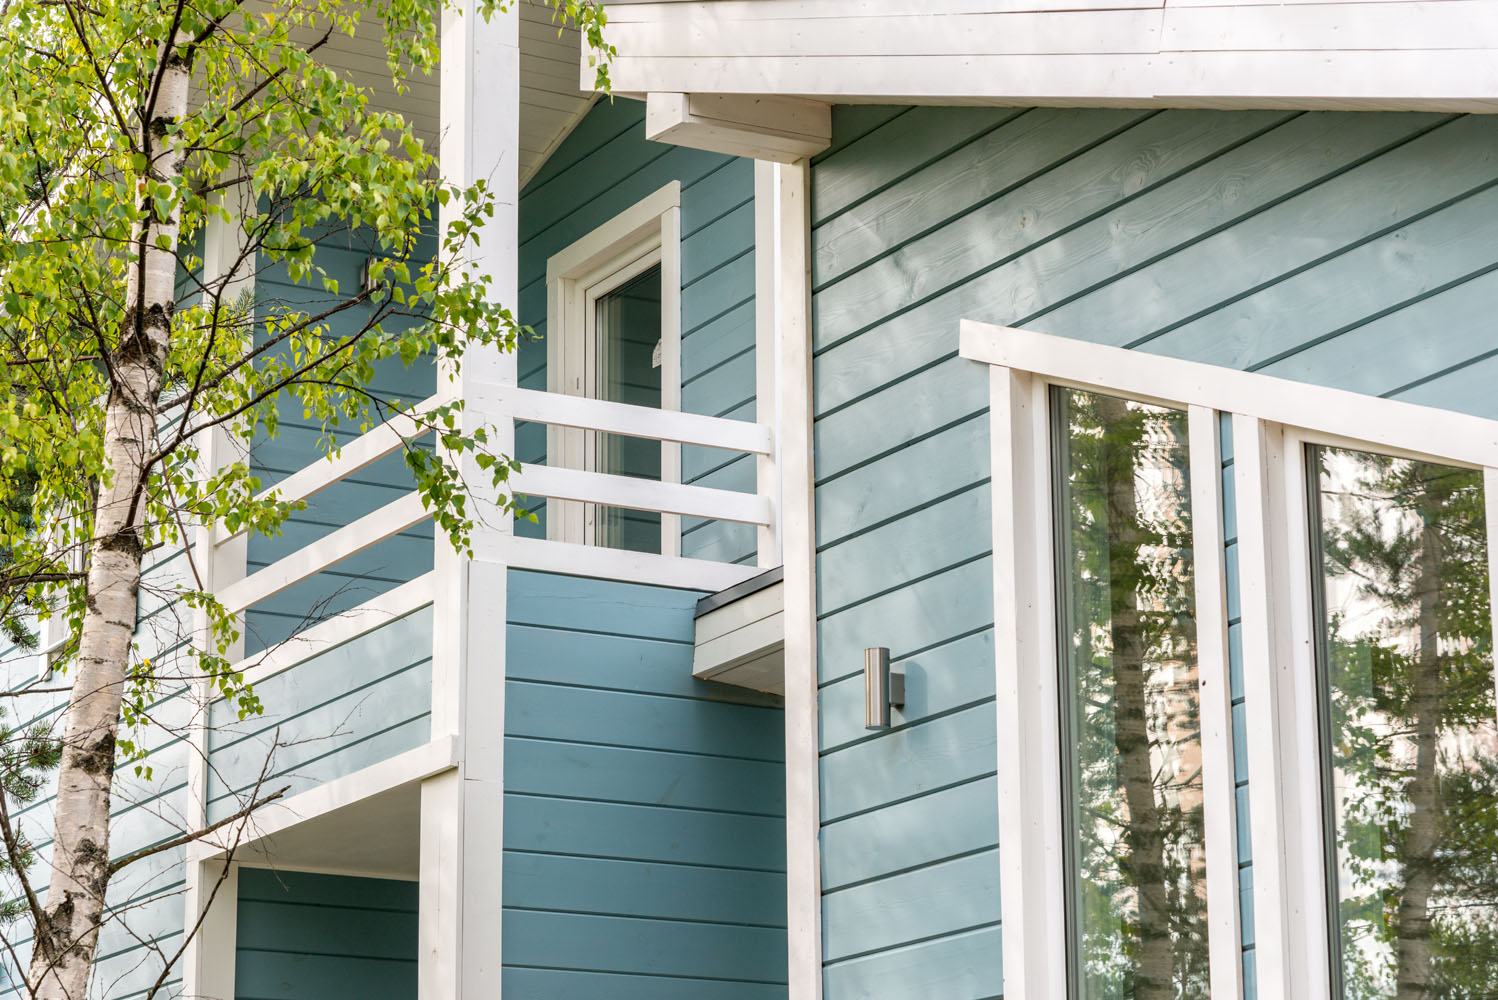 Portion of home with light blue siding & white trim windows. Keyprime installs your windows, doors & siding to your liking